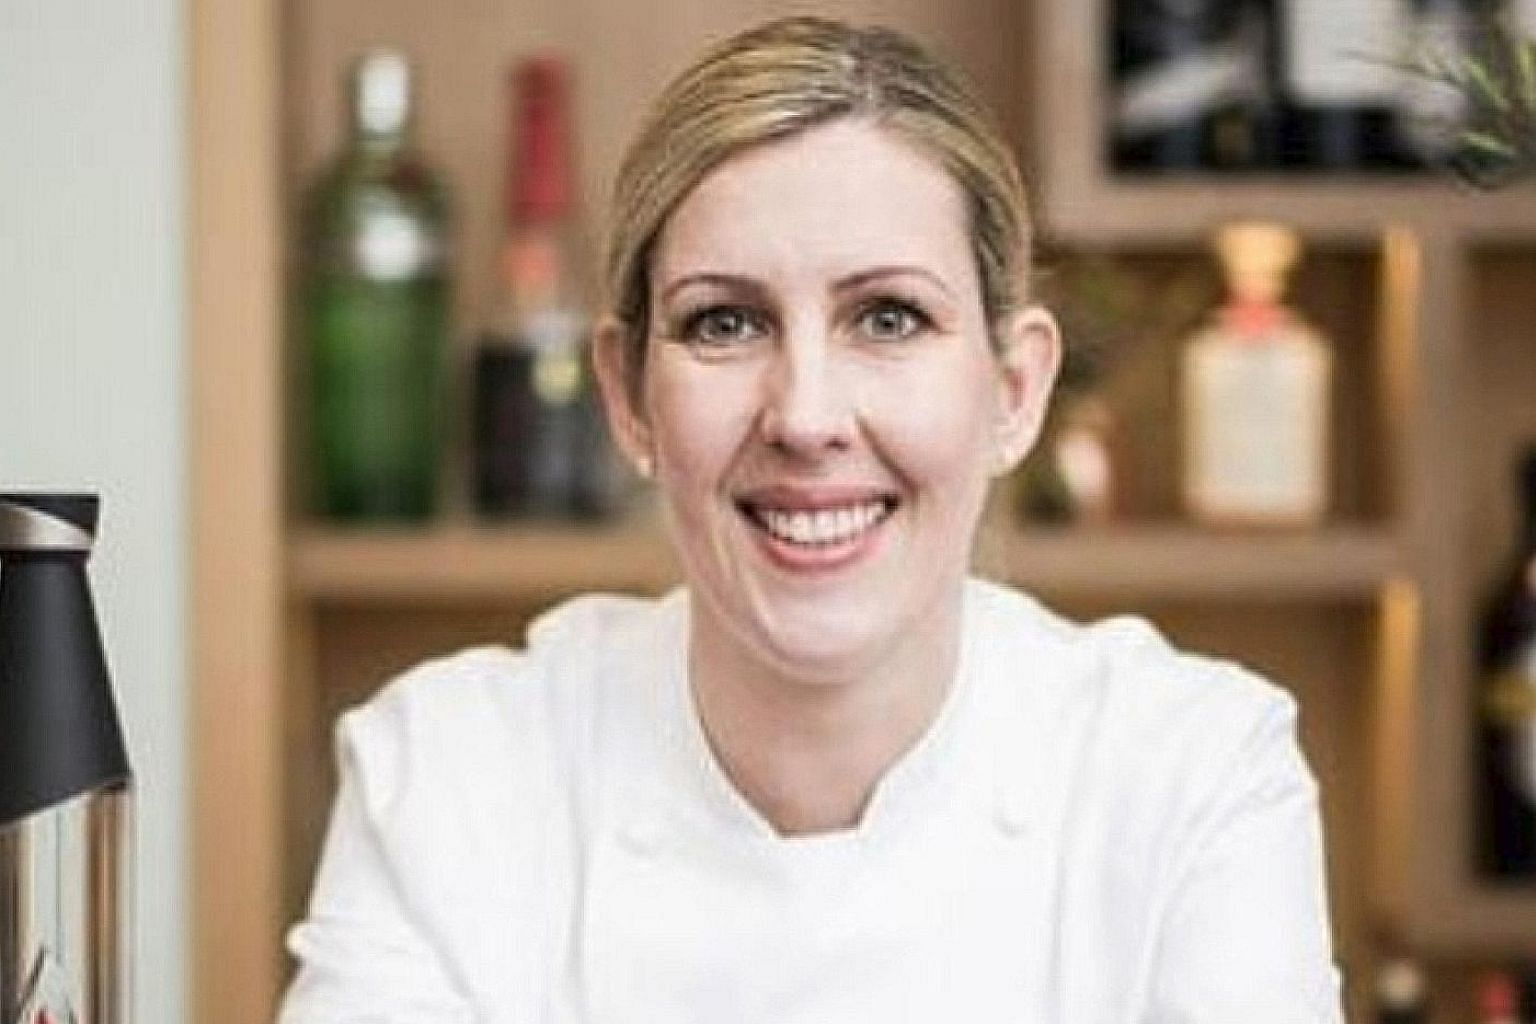 Chef Clare Smyth (above), who runs Core By Clare Smyth in Notting Hill, is known for her light and modern interpretation of classic French cooking.